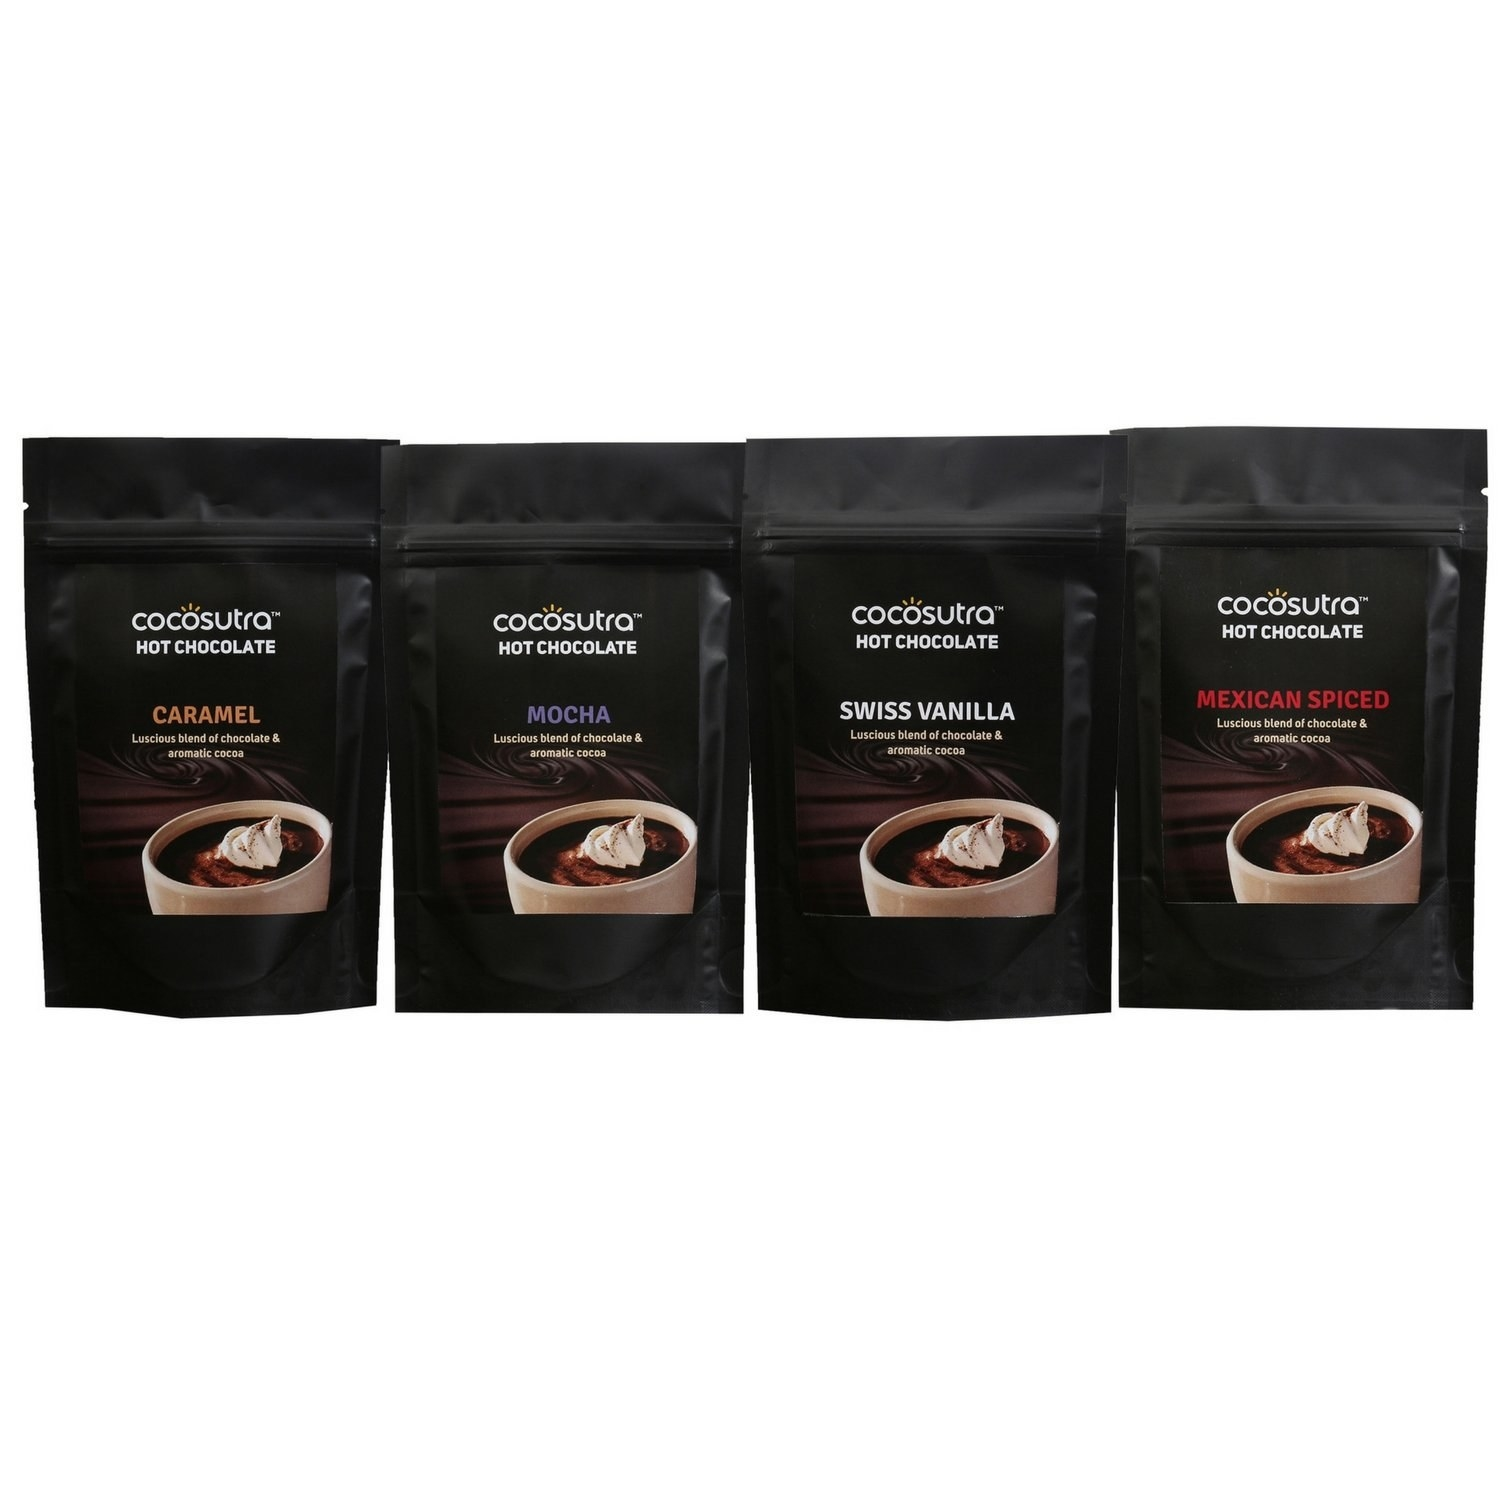 A set of 4 hot chocolate blends